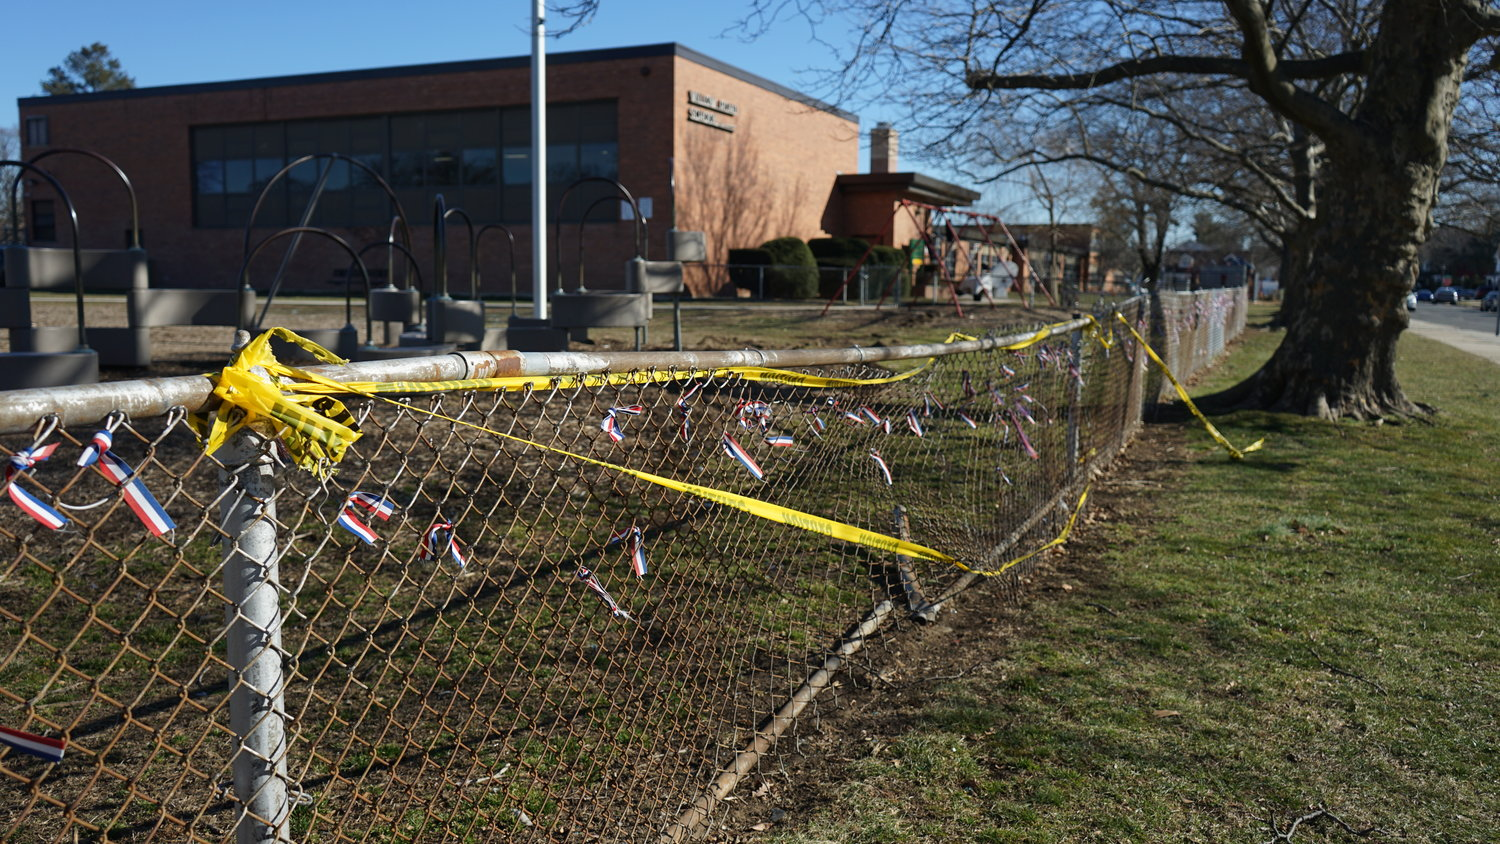 In the aftermath of a Jan. 2 car crash at the Willow Road Elementary School playground, parents and officials are seeking additional safety measures at the school and on the surrounding streets.